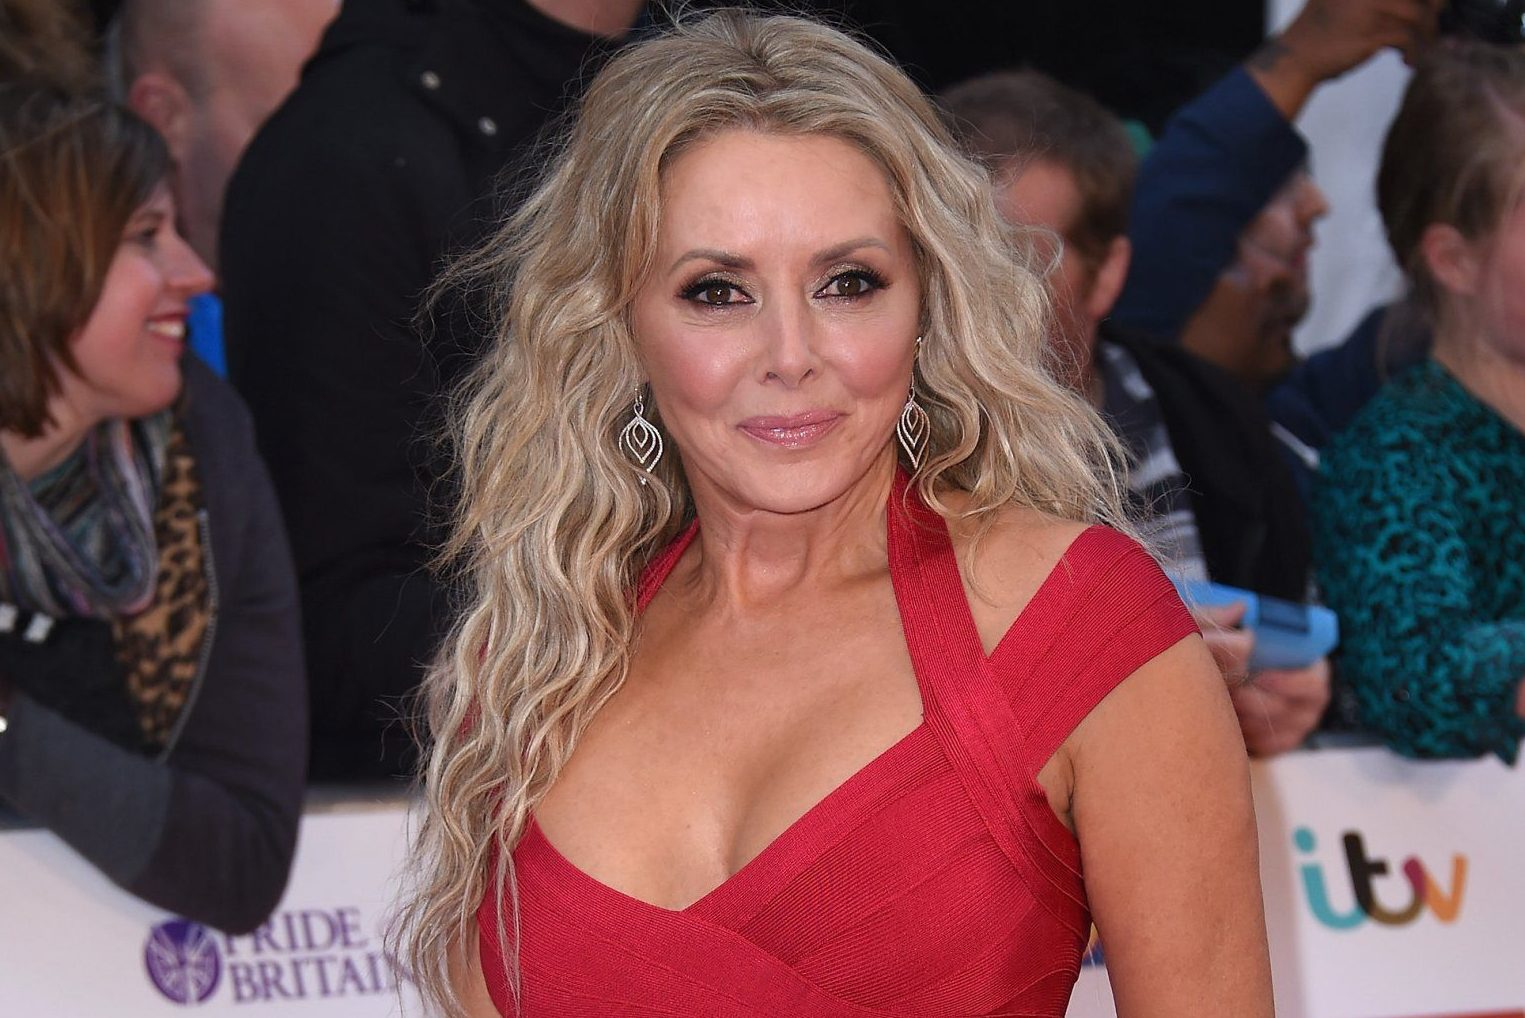 Broadcaster Carol Vorderman attends the Pride of Britain awards at The Grosvenor House Hotel on September 28, 2015 in London, England. LONDON, ENGLAND - SEPTEMBER 28: (Photo by Gareth Cattermole/Getty Images)